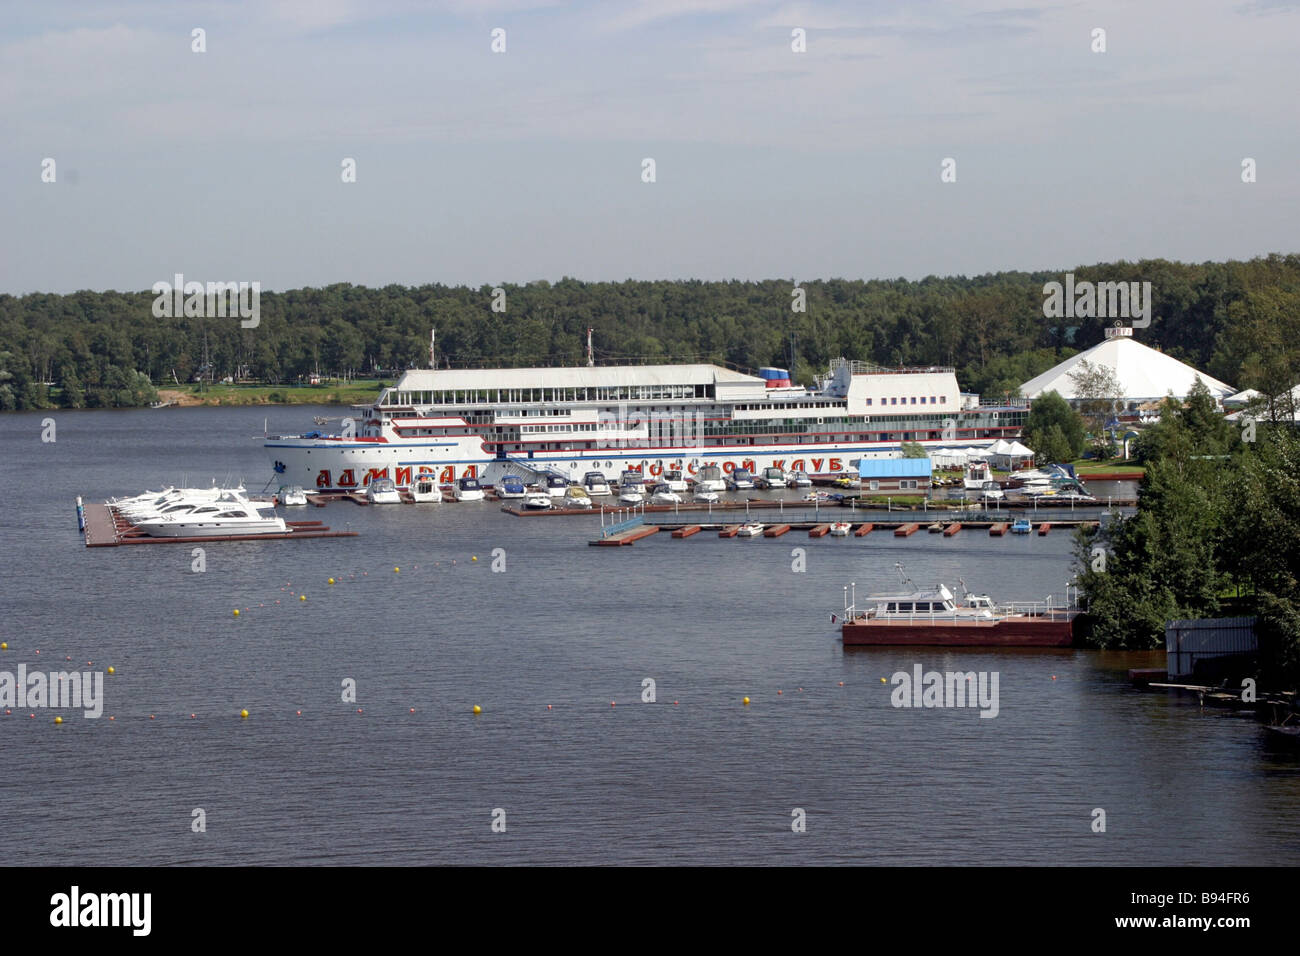 The Admiral luxury yachting club on the Klyazma Reservoir near Moscow before fire - Stock Image